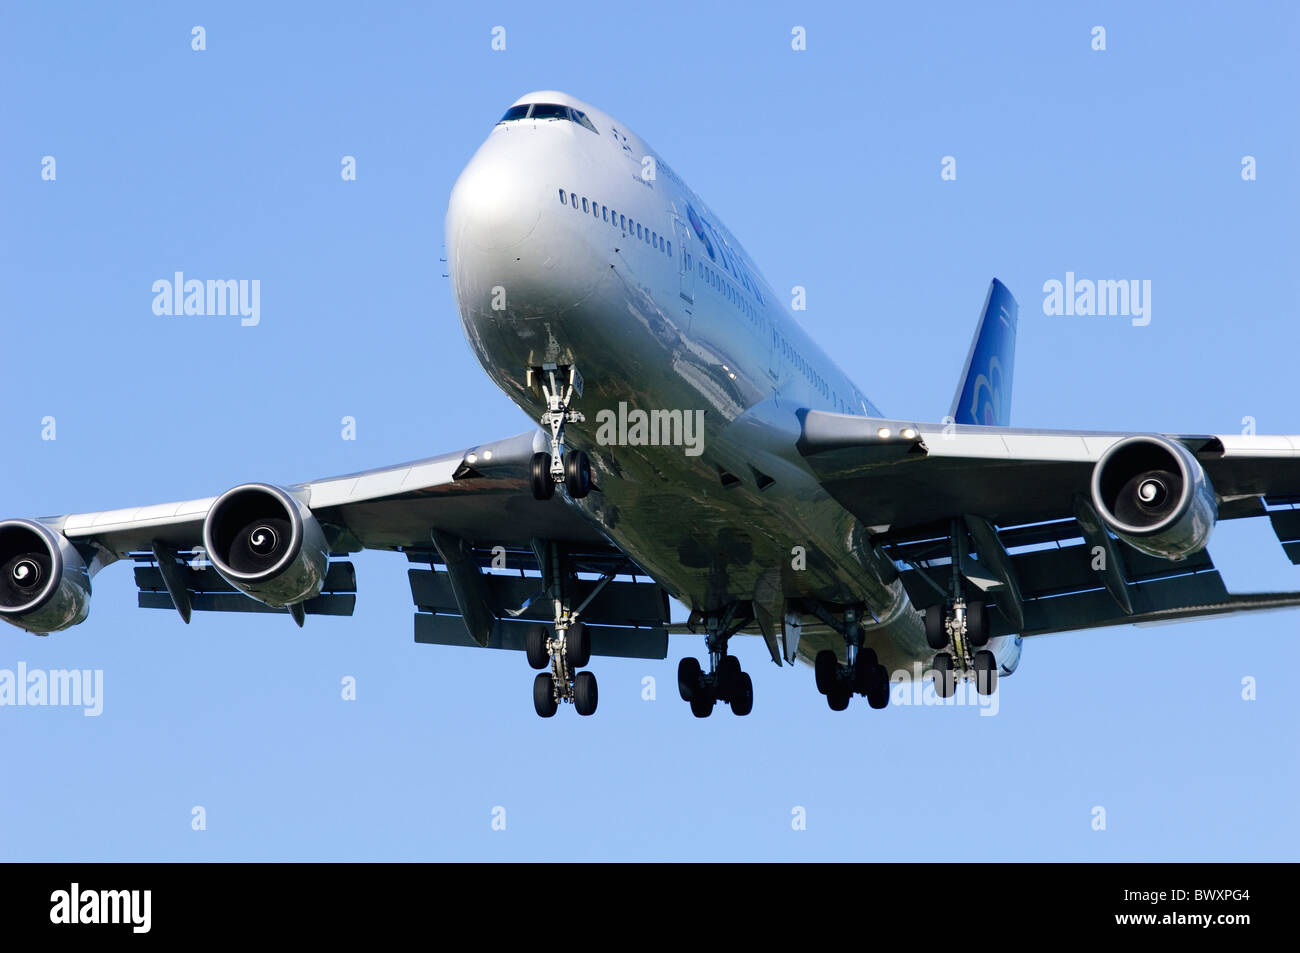 Boeing 747 jumbo jet operated by Thai Airways on approach for landing at London Heathrow Airport Stock Photo